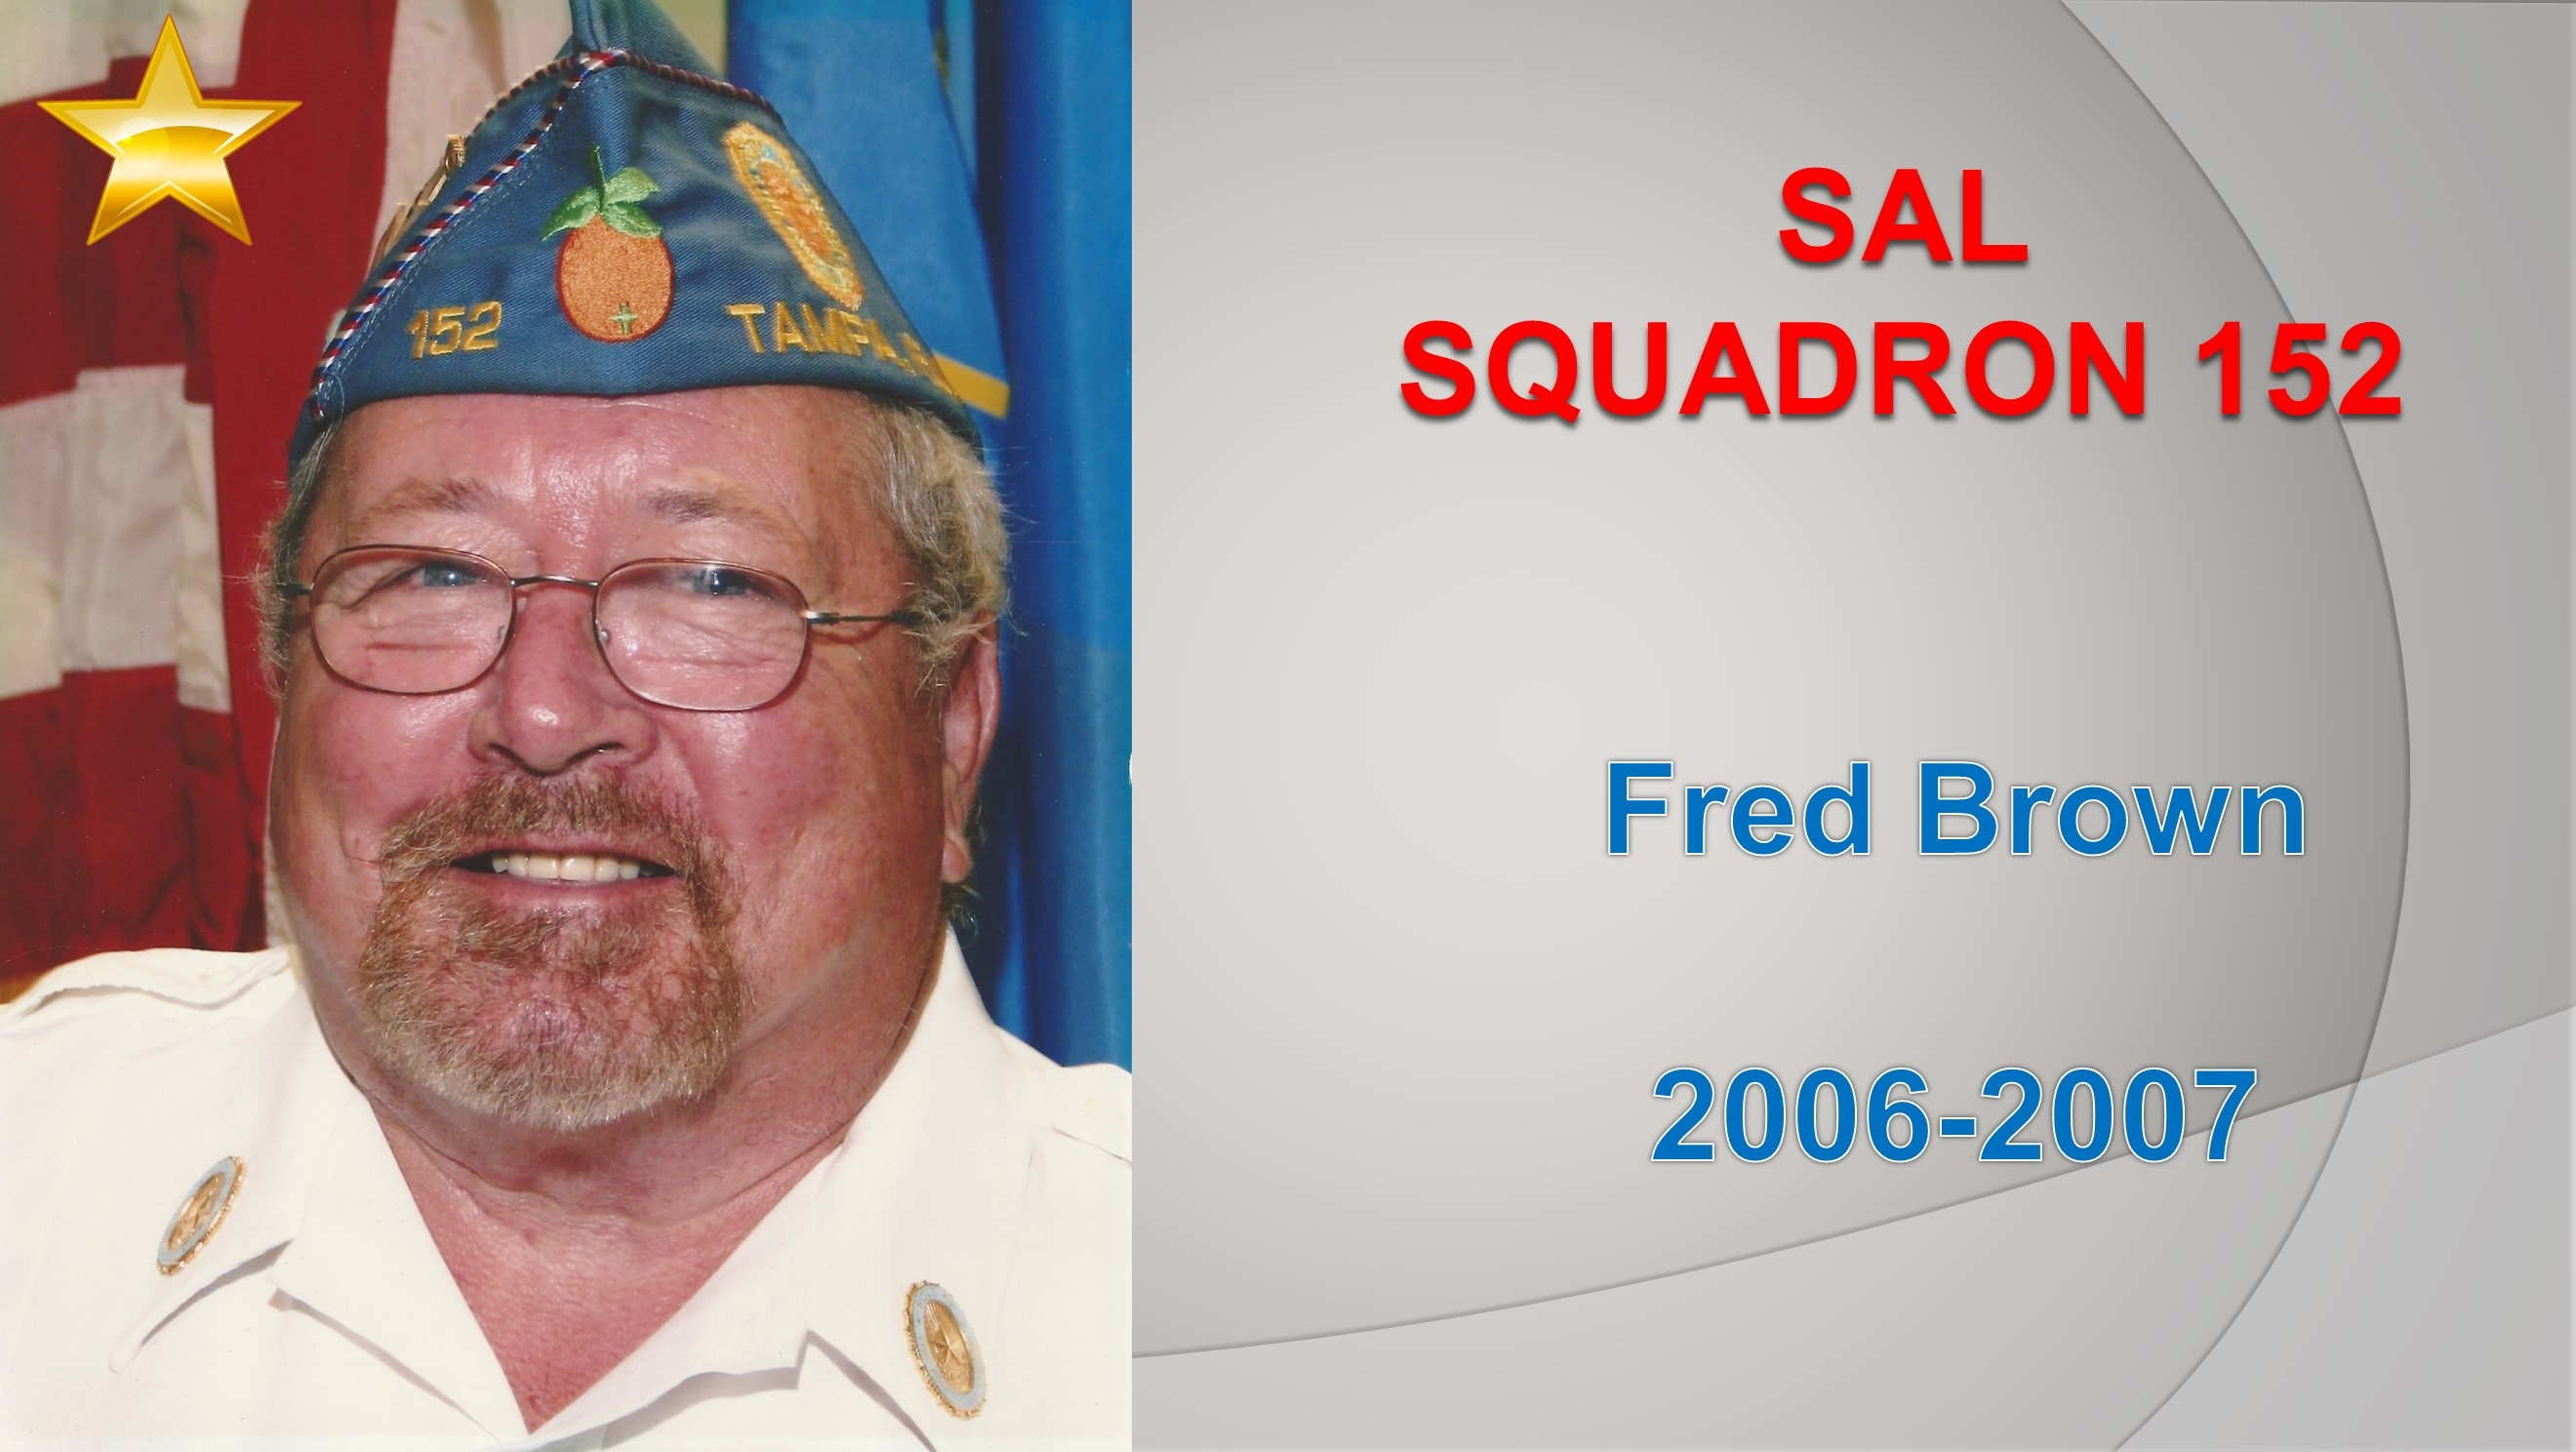 Fred Brown 2006-2007